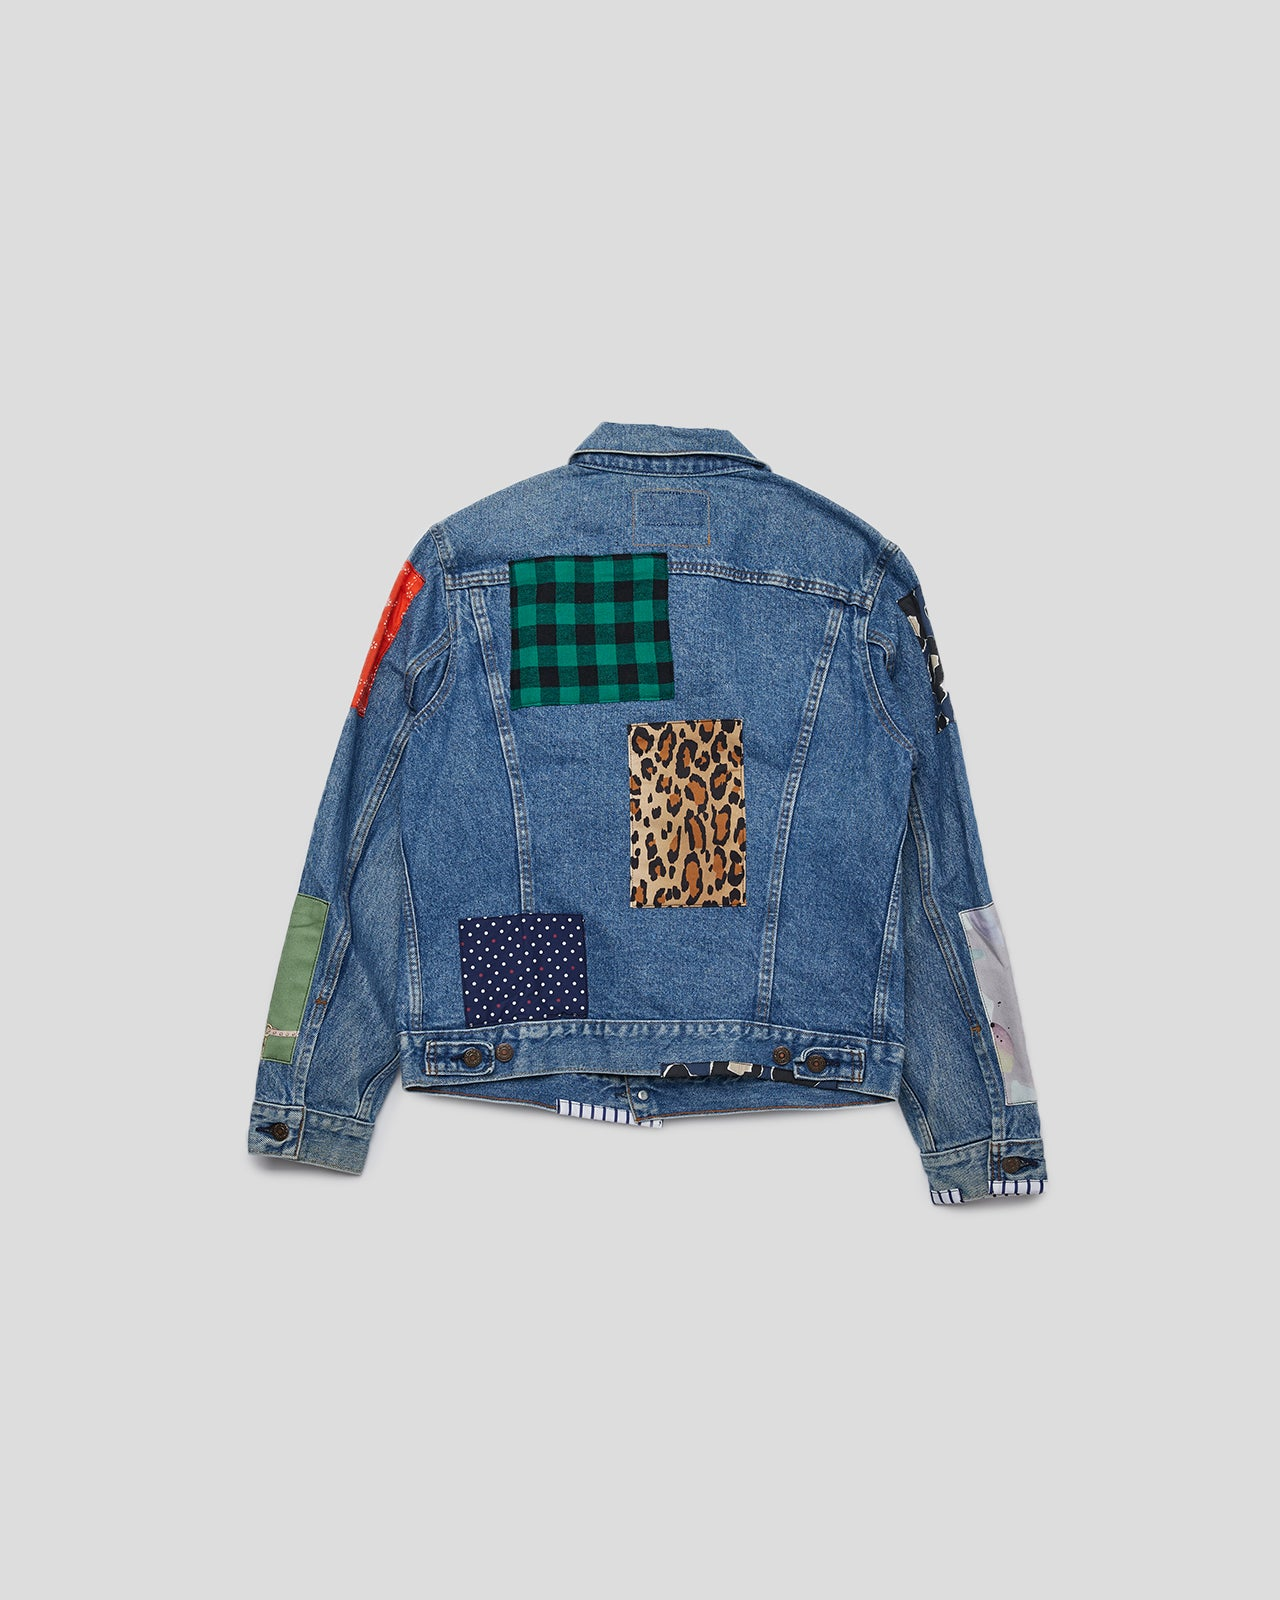 Awake Levi's Trucker Jacket in Denim Patchwork